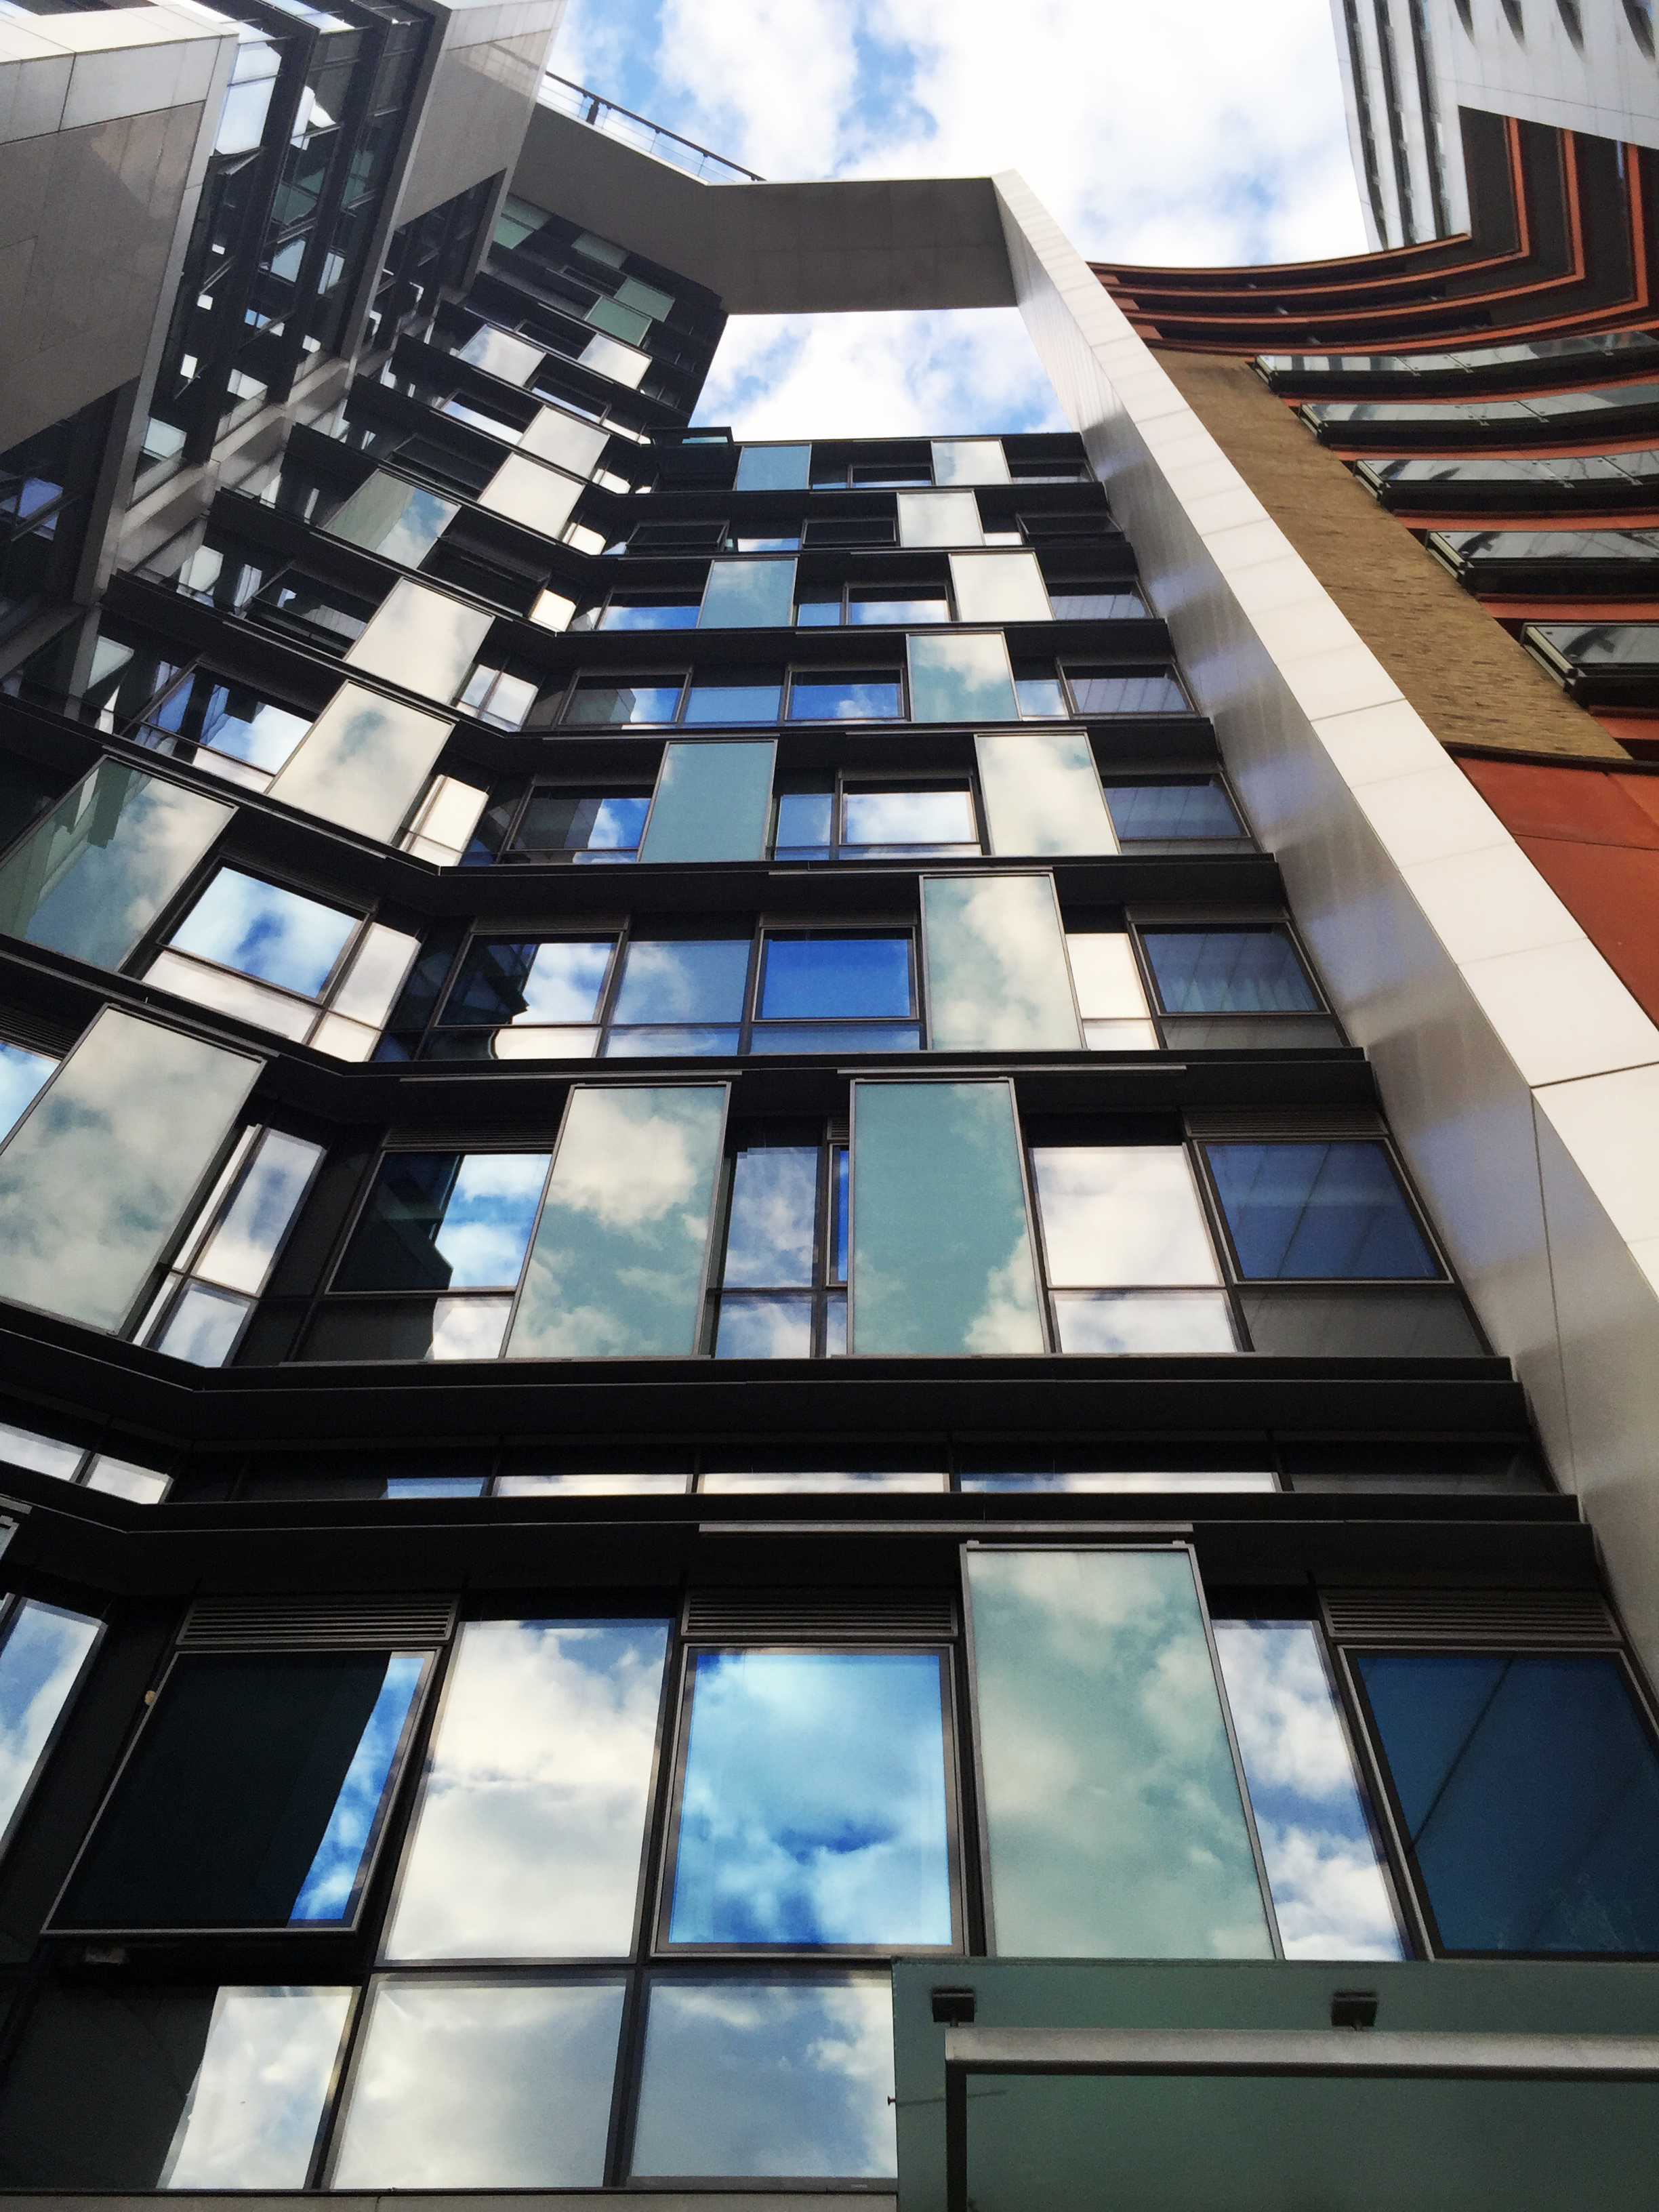 Building 4 | Paddington Basin